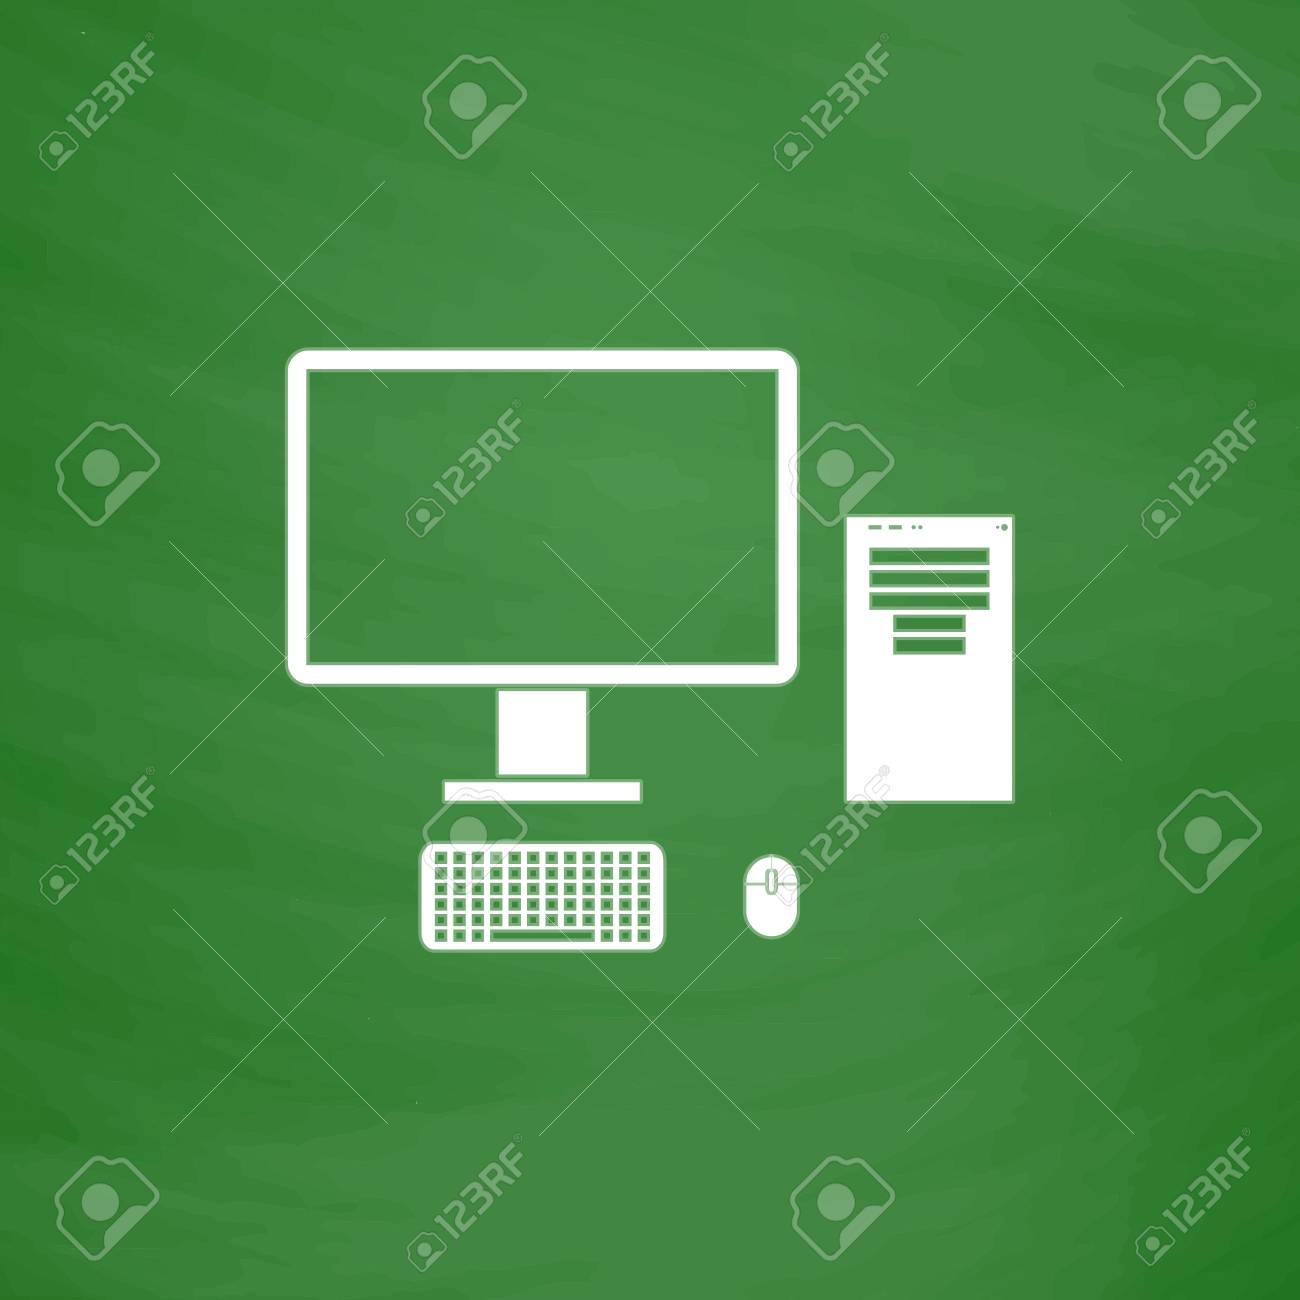 Computer Case With Monitor Keyboard And Mouse Flat Icon Imitation